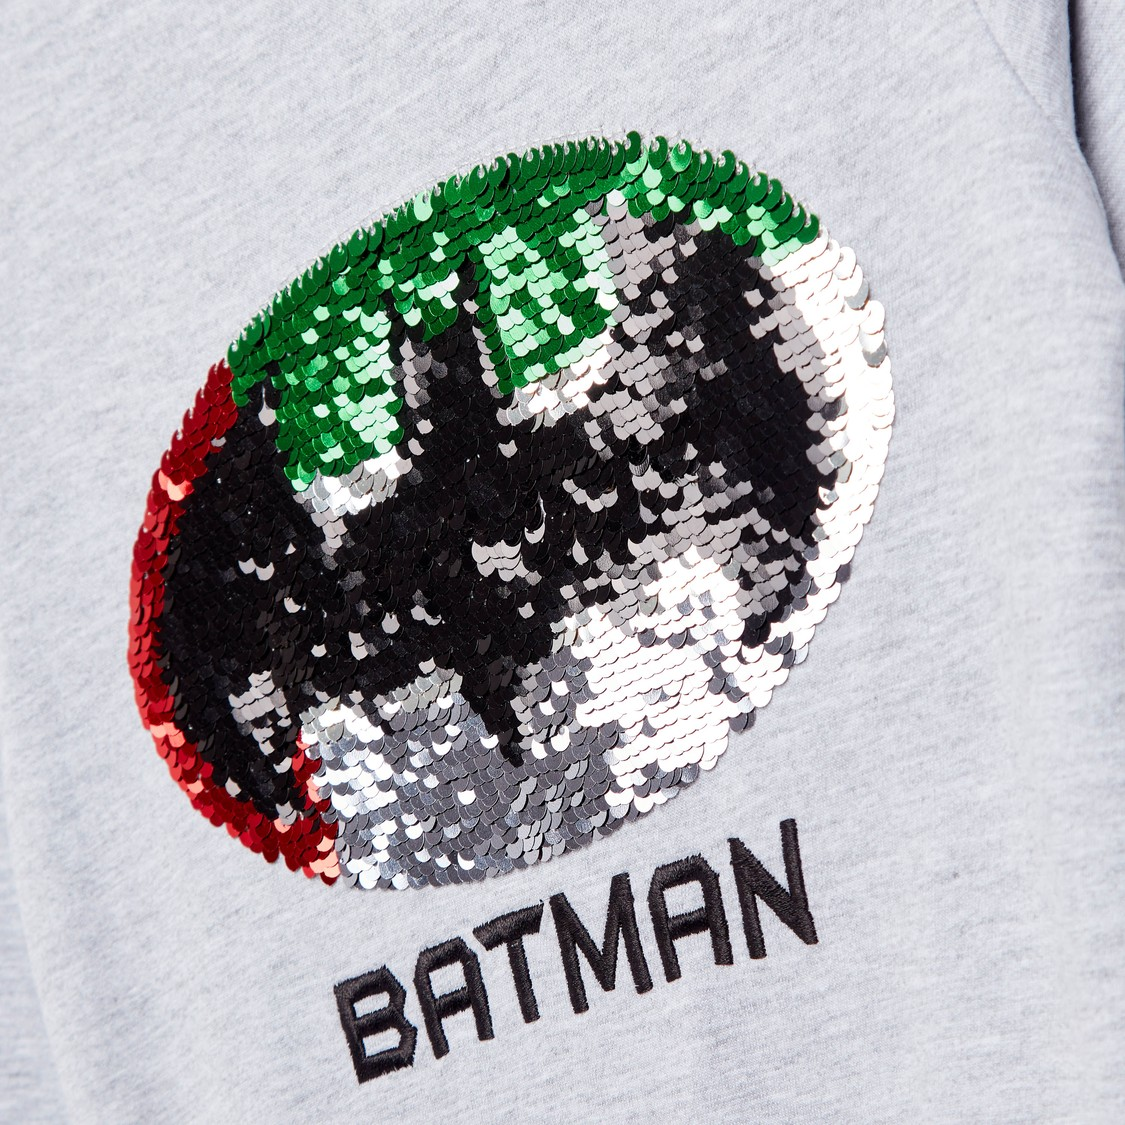 Sequin Detail Batman Sweatshirt with Round Neck and Long Sleeves